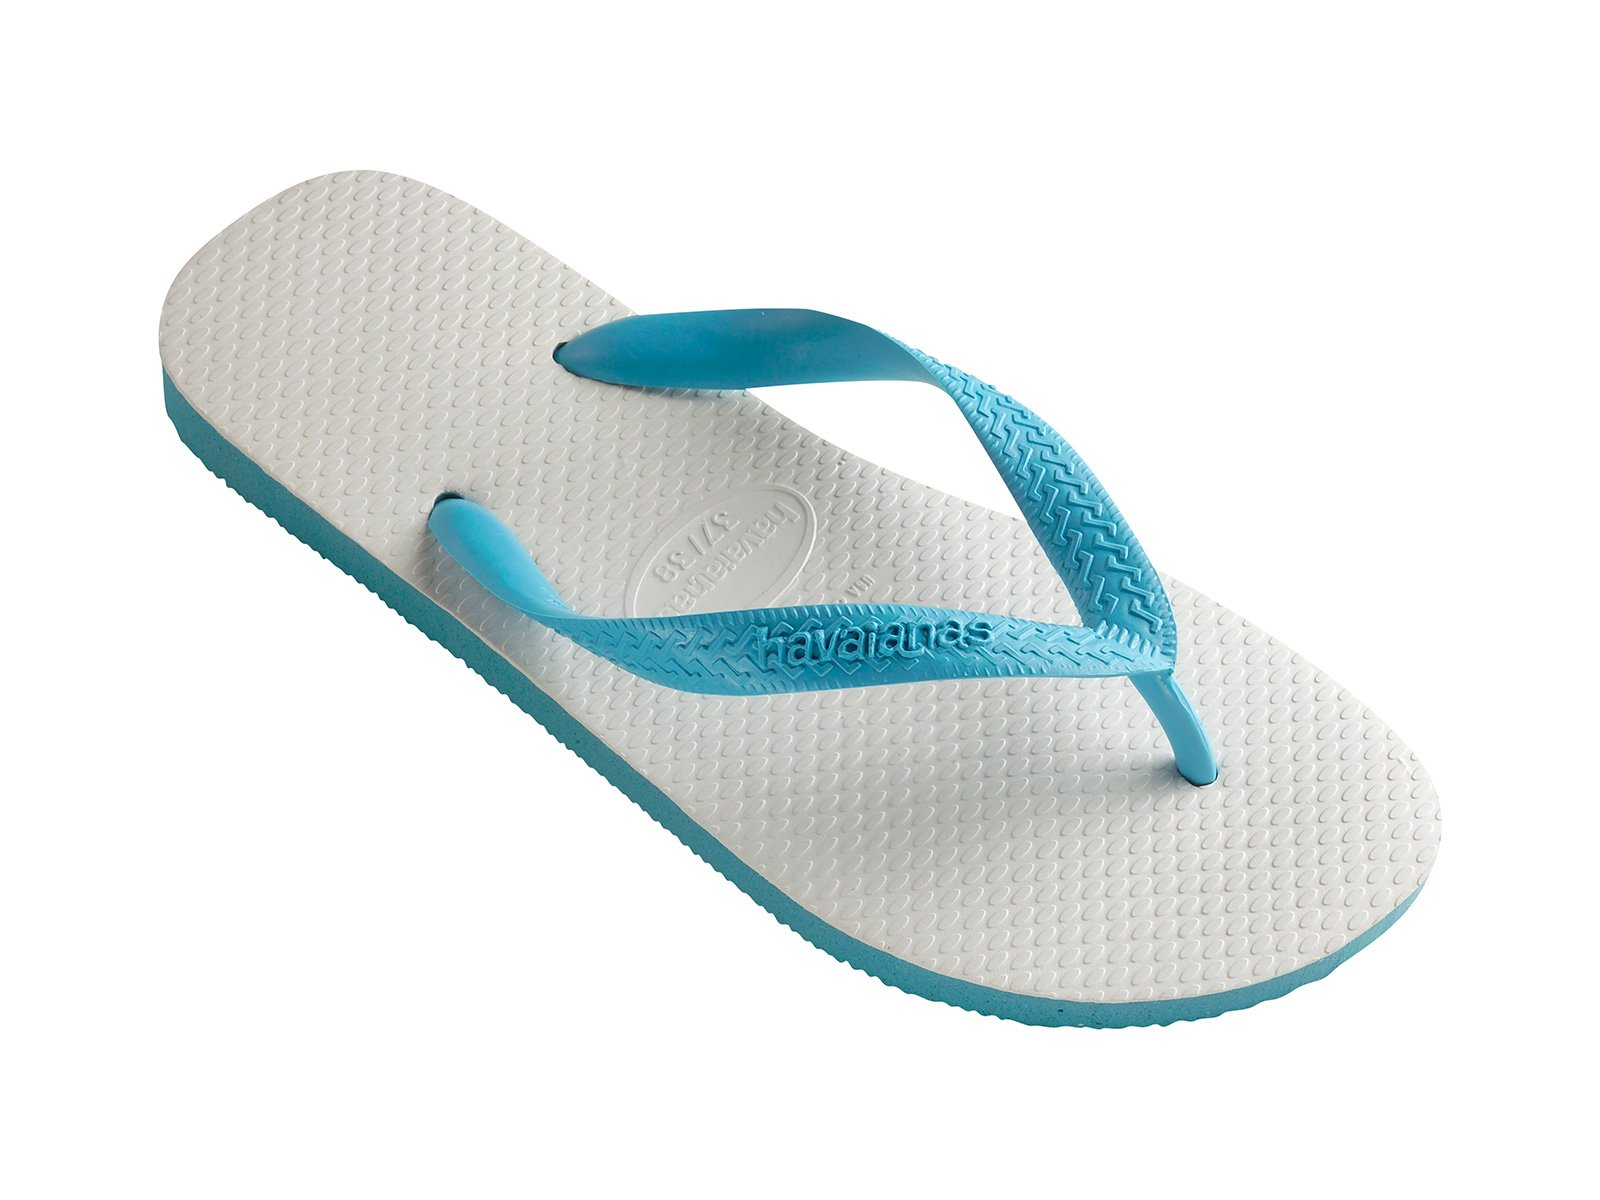 86996bd9398dd White And Sky Blue Two-tone Brazilian Flip-flops - Tradicional Blue -  Havaianas